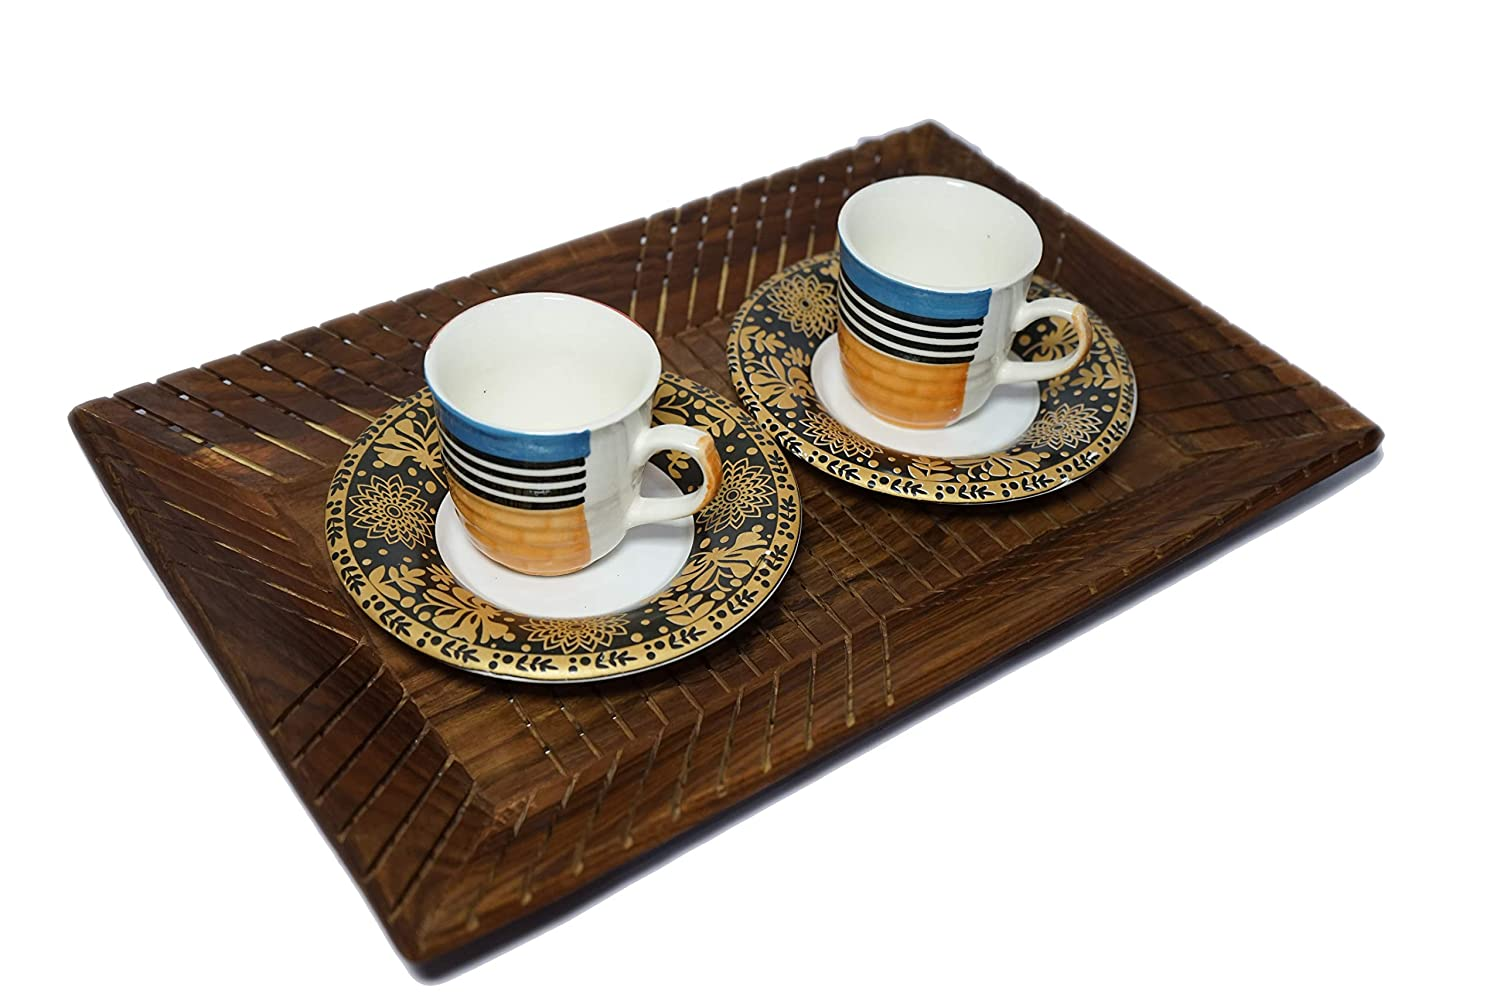 Agukoi Serving Tray (Tea, Coffee, Snacks, Water) Decorative Tray/Platter for Home